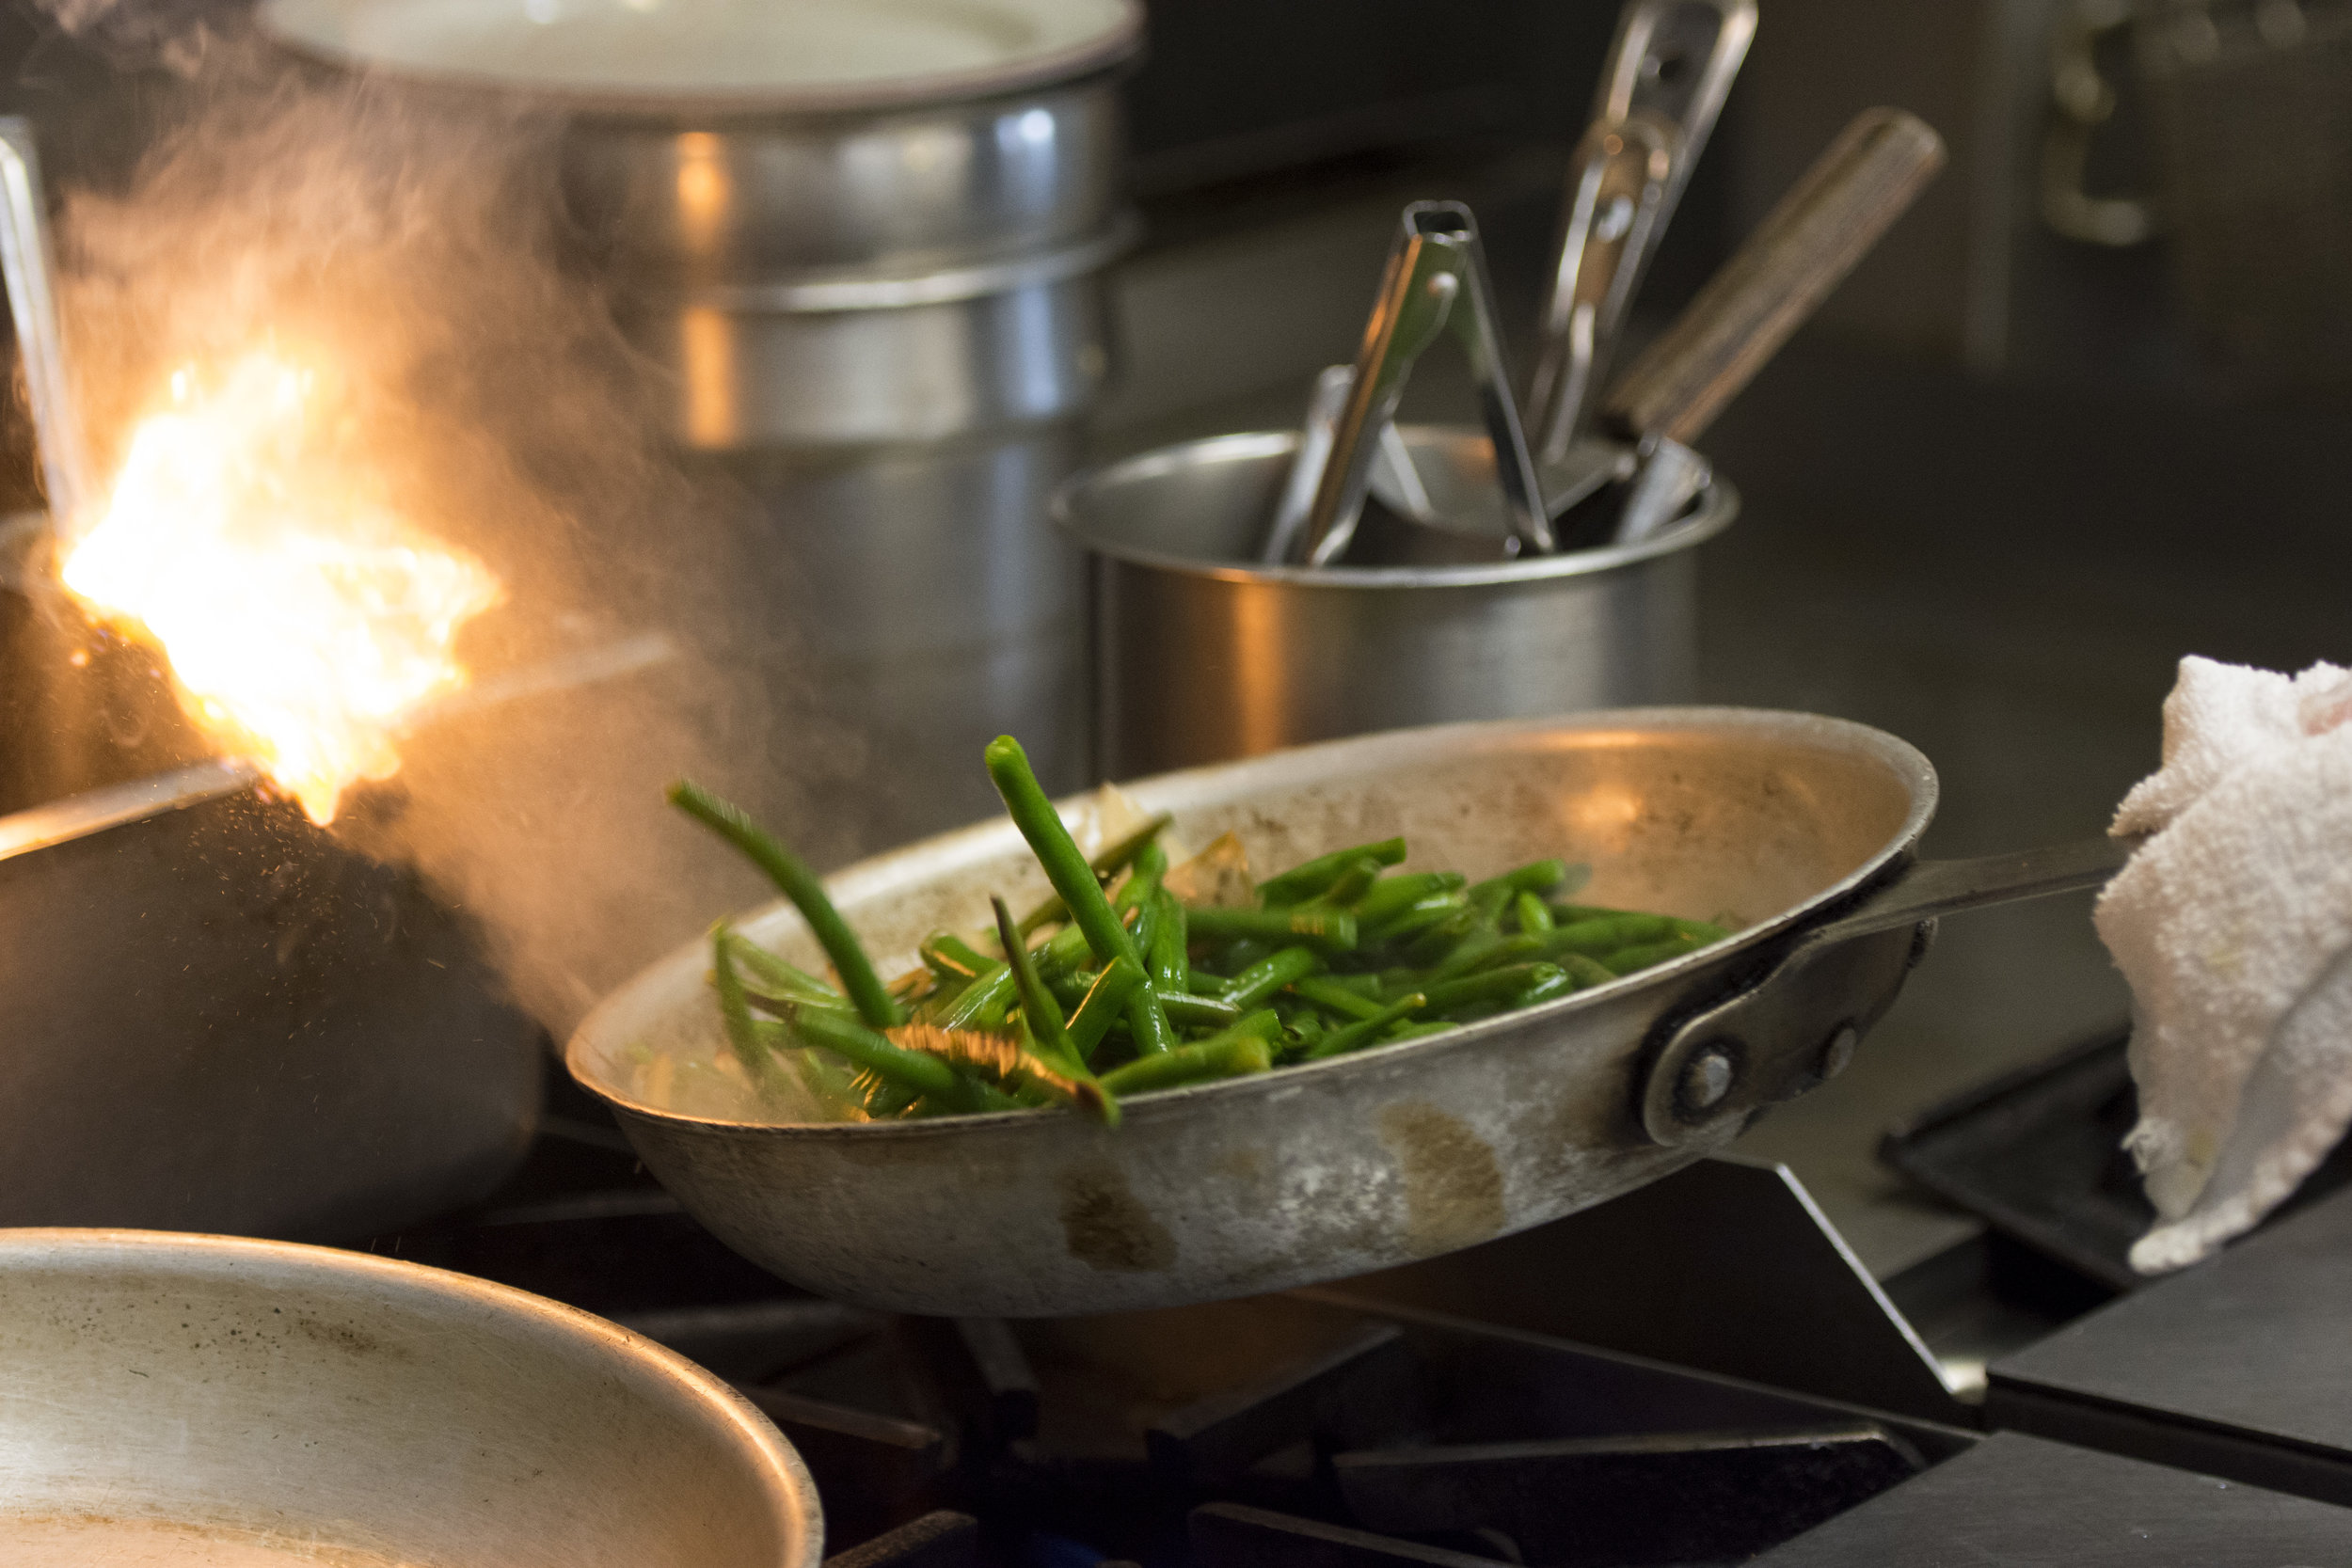 A student sautees green beans during the Professional Cook class at the Culinary Academy of Las Vegas.